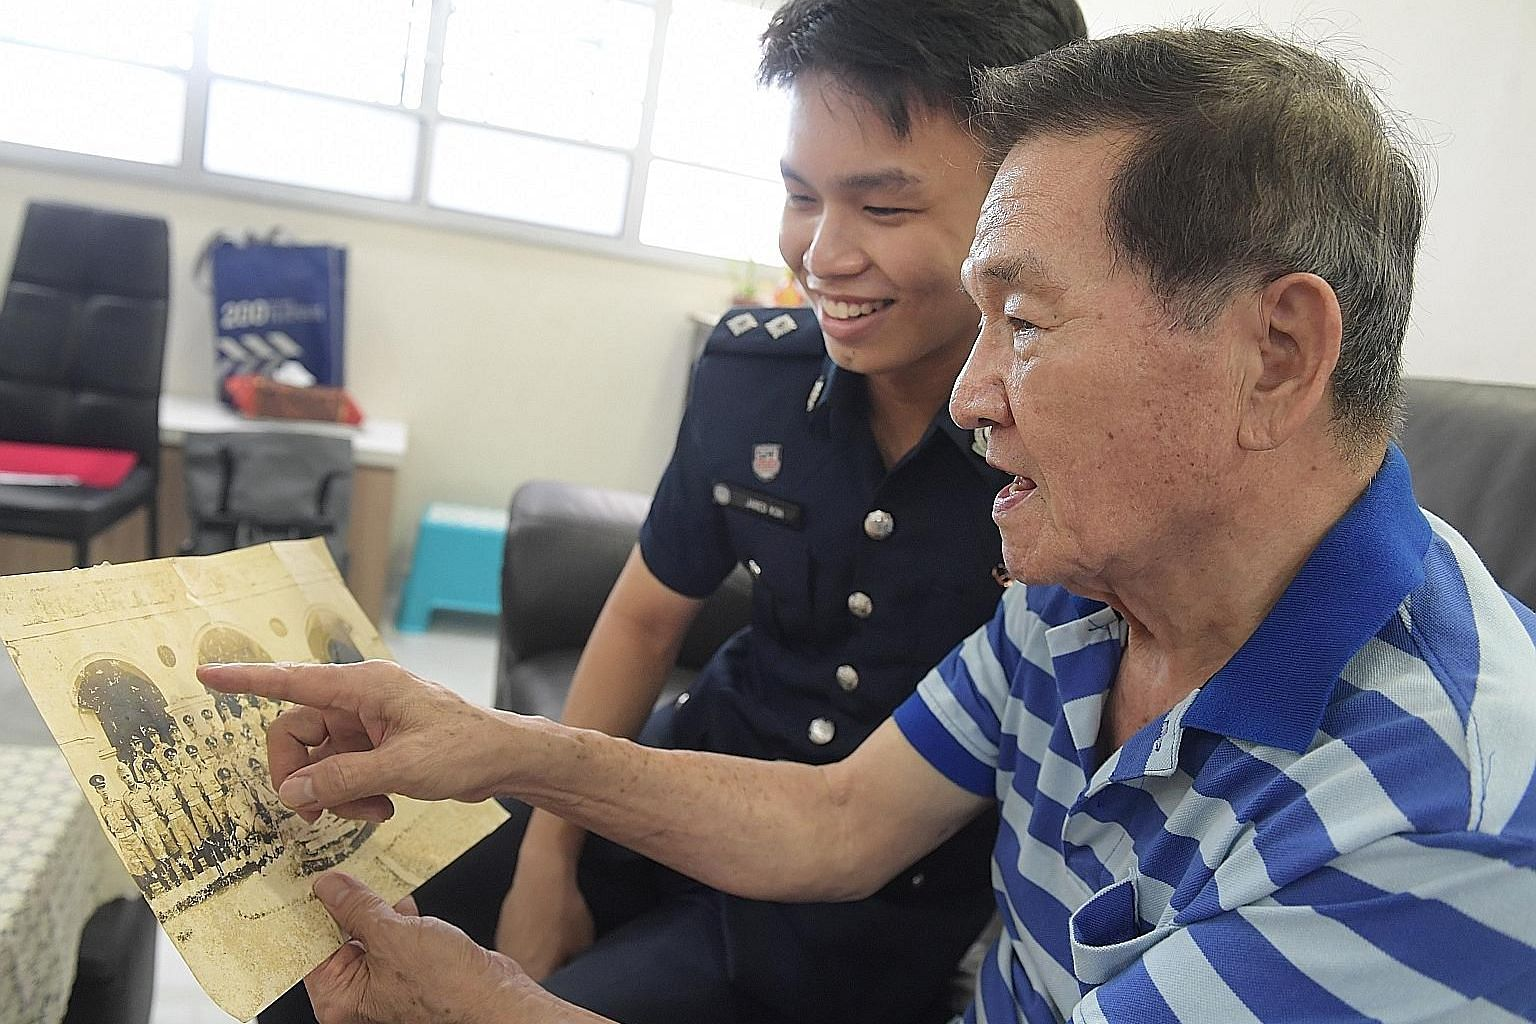 Scholarship recipient Jared Koh was inspired to join the police force by his grandfather, Mr Tan Hang Meng, who was a former policeman. Mr Koh grew up listening to his grandfather's police yarns. ST PHOTO: ALPHONSUS CHERN